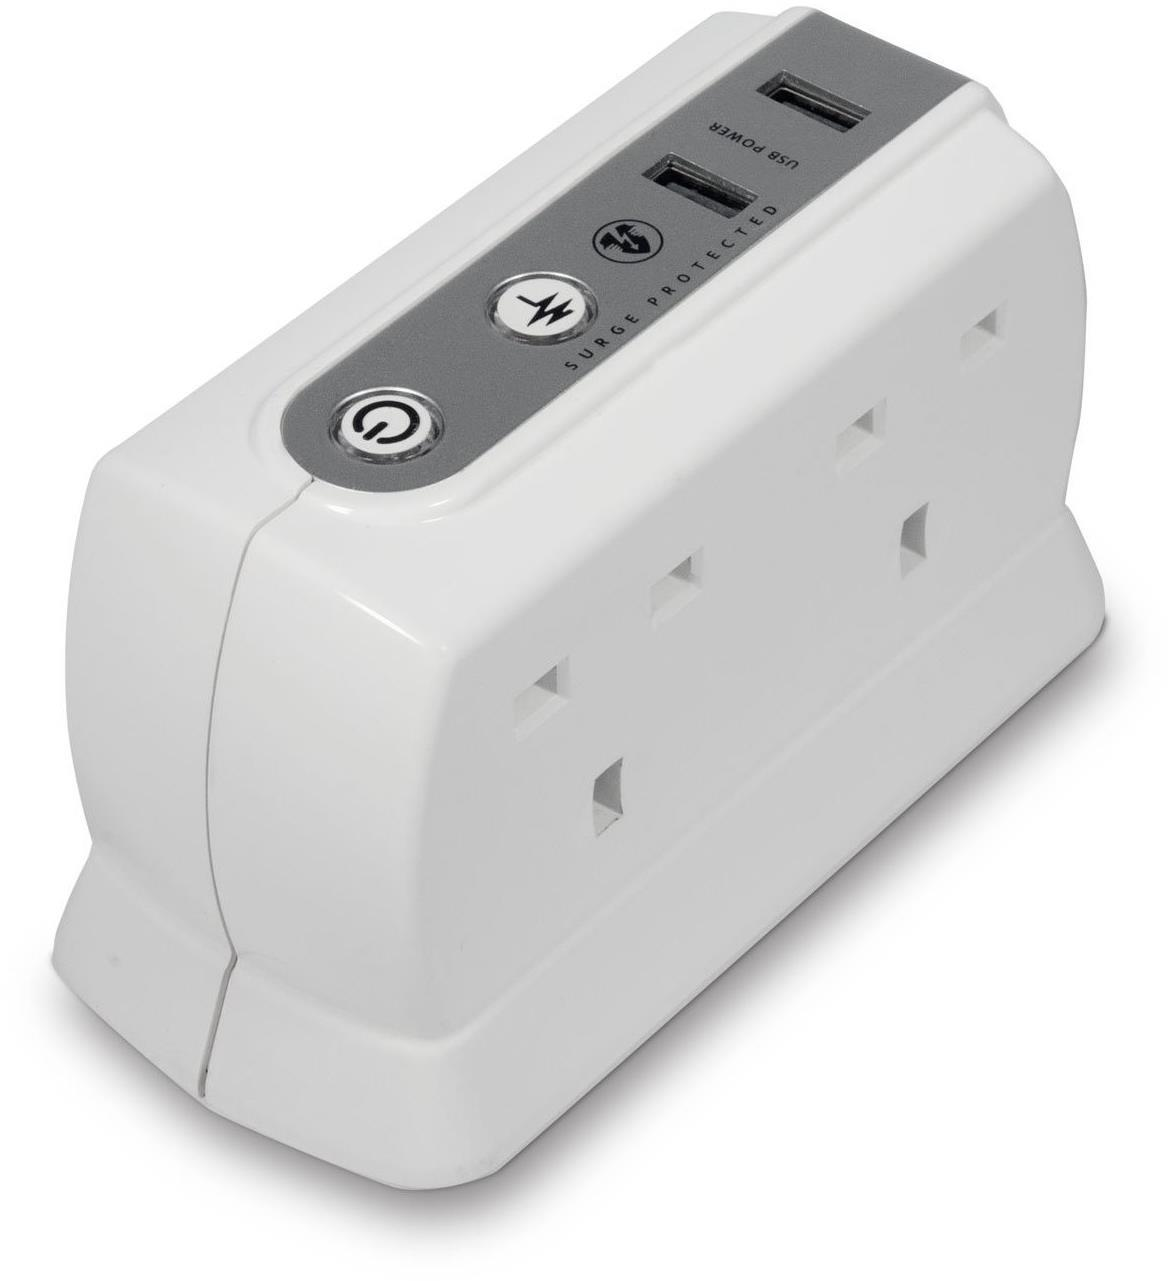 Masterplug White 4-Way Surge Protected Power Socket with 2x USB Ports